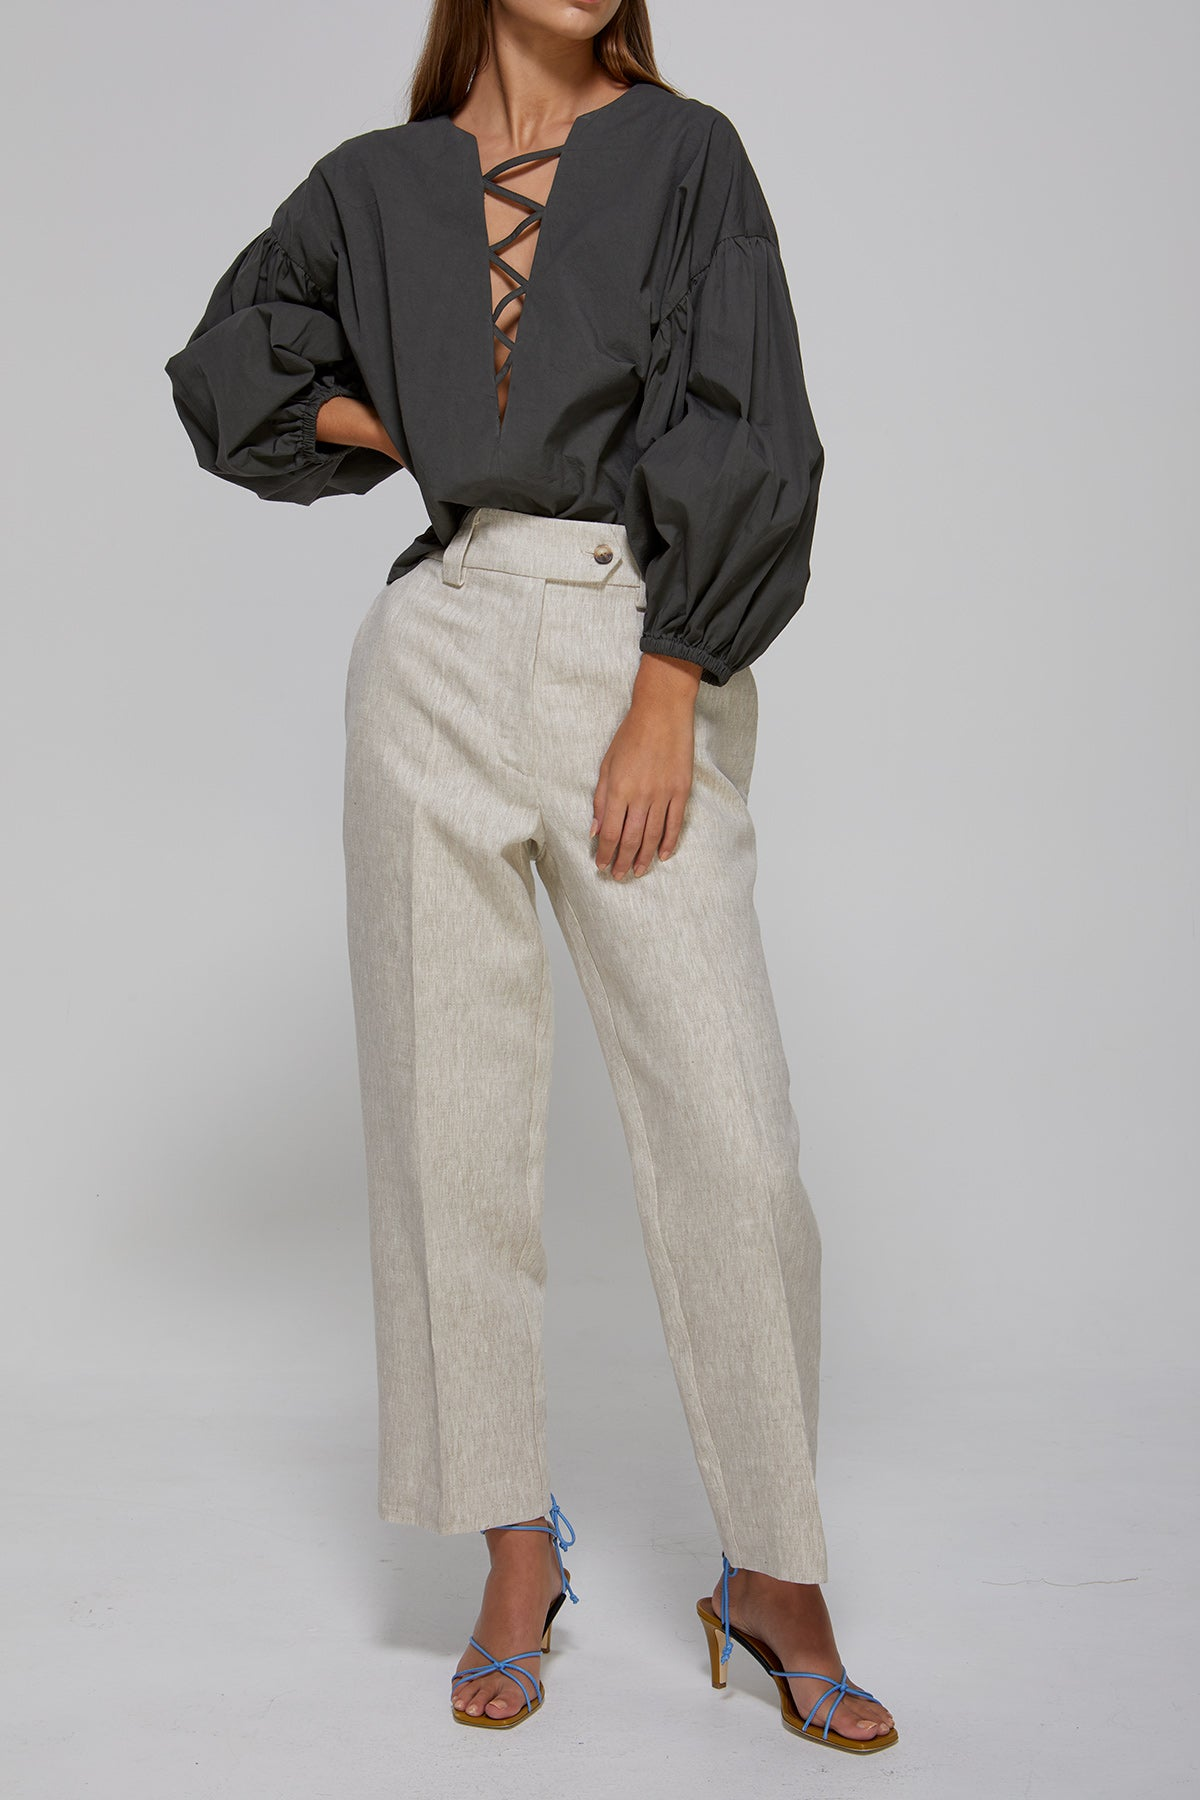 Penny Pant Natural Linen Gregory SS20 Collection NZ Sustainable Fashion Design